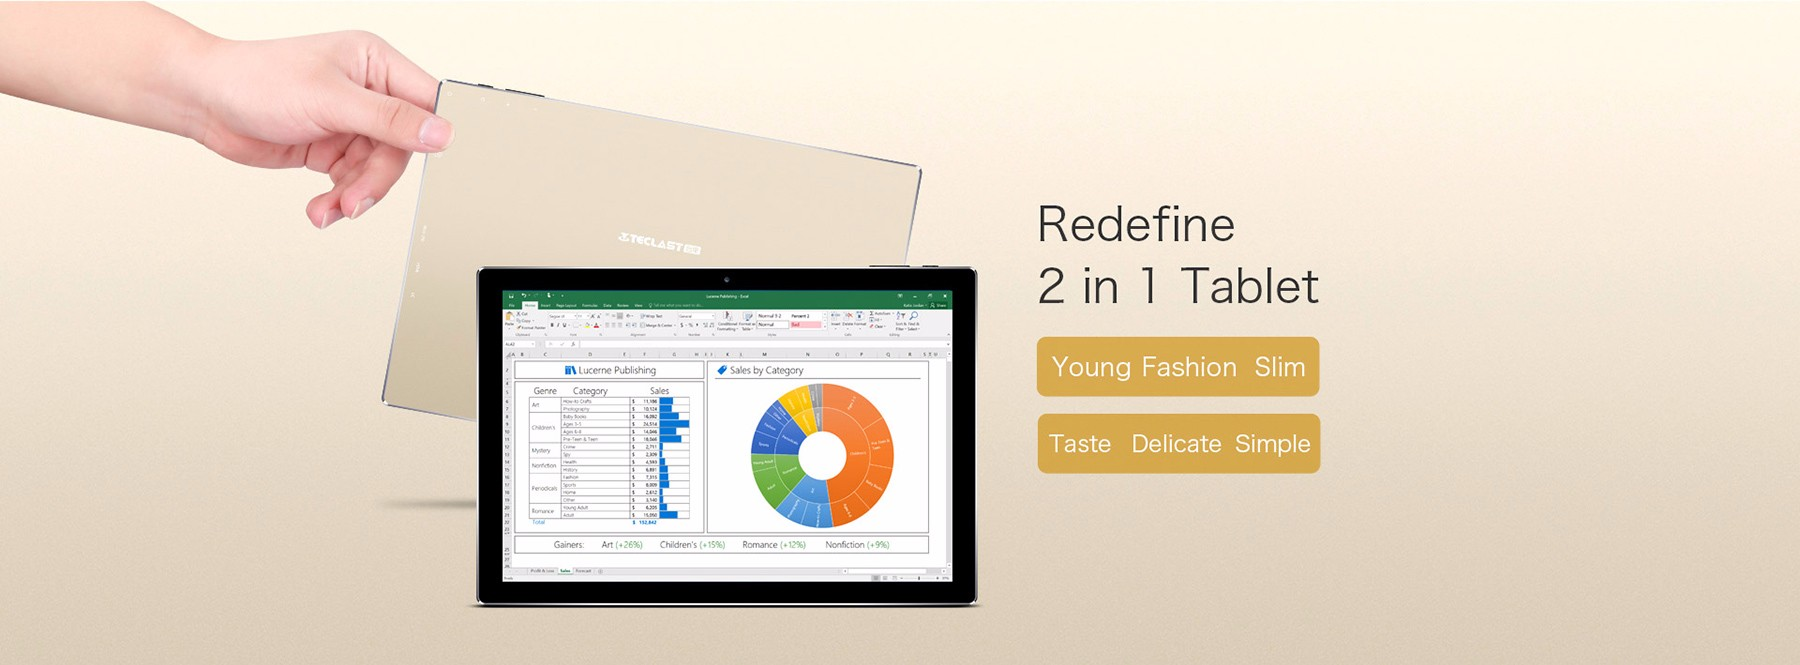 Teclast Tbook 10 S 2 in 1 Tablet PC with Stylus 10.1 inch Windows 10 + Android 5.1 Intel Cherry Trail X5-Z8350 Quad Core 1.44GHz 4GB RAM 64GB ROM HDMI